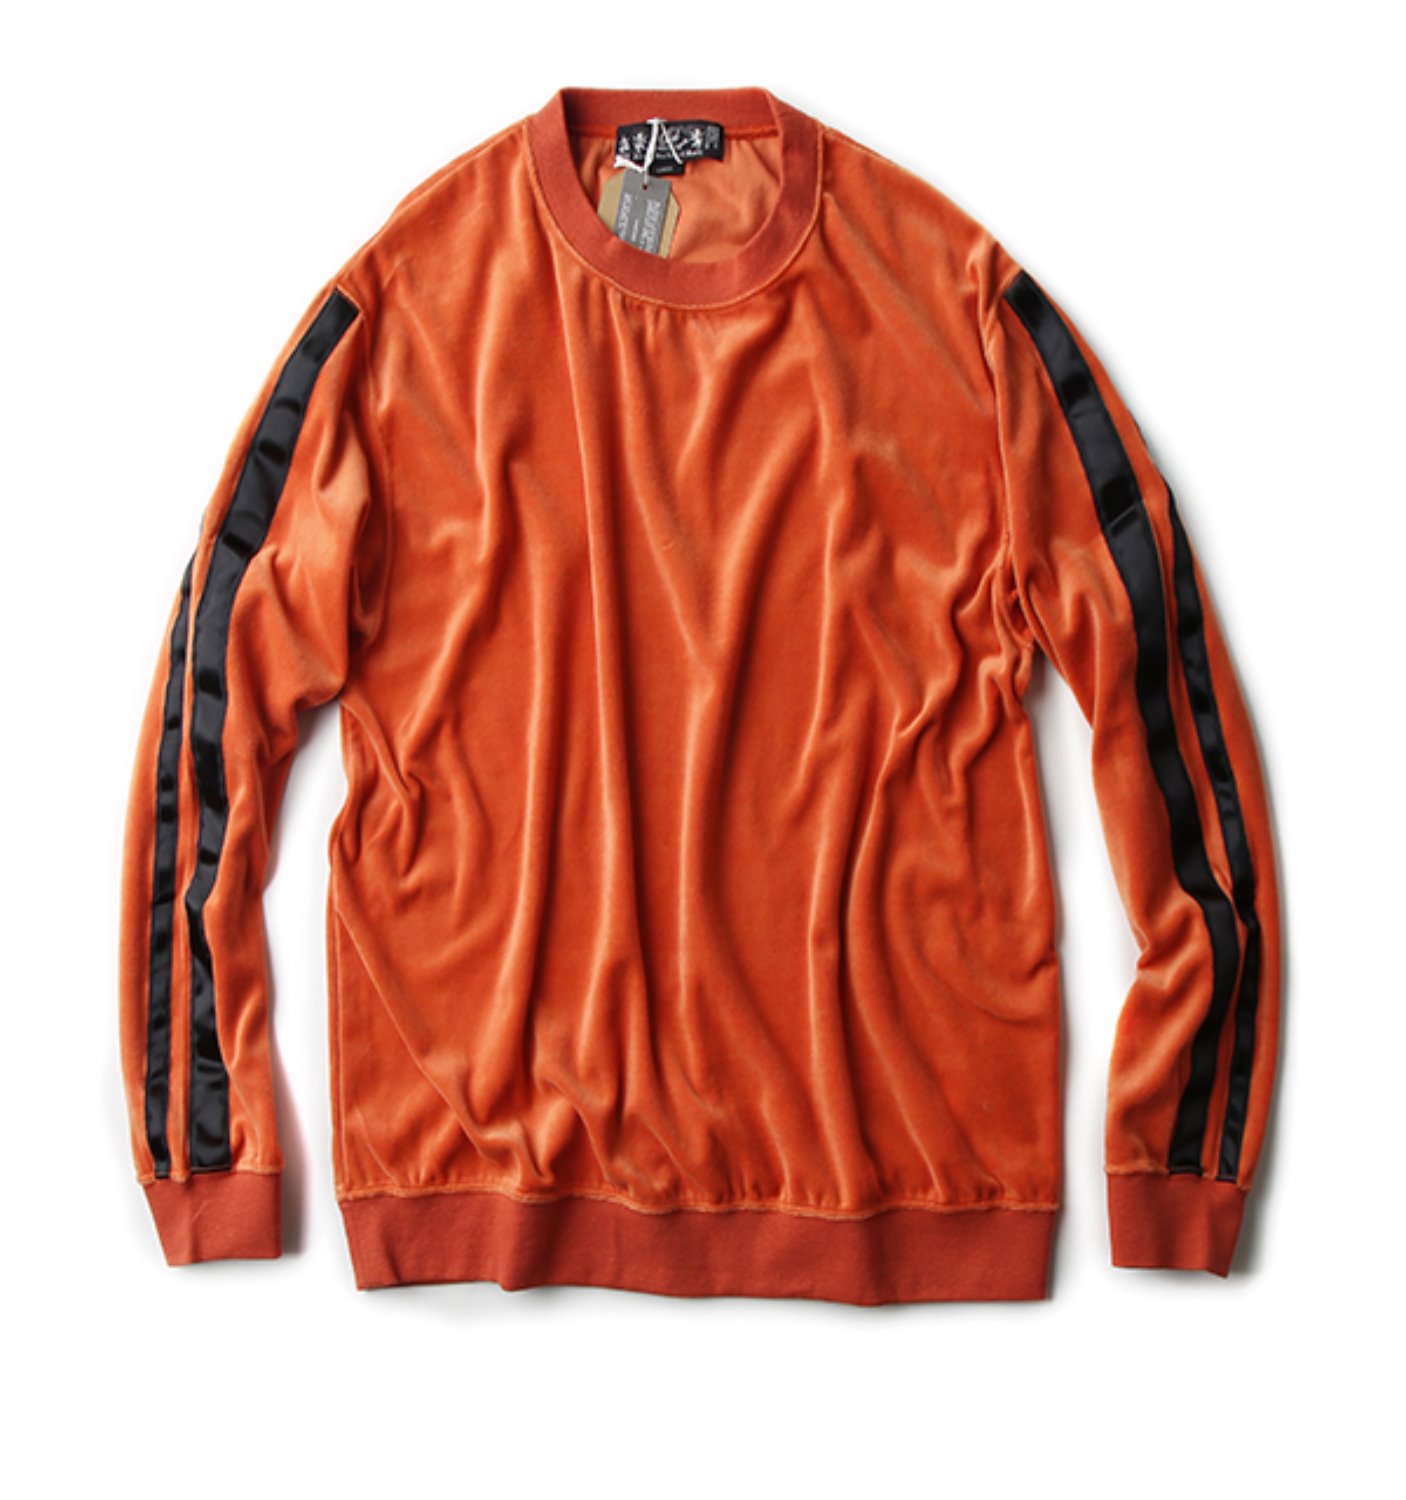 TAPED VELOUR CREWNECK ORANGE